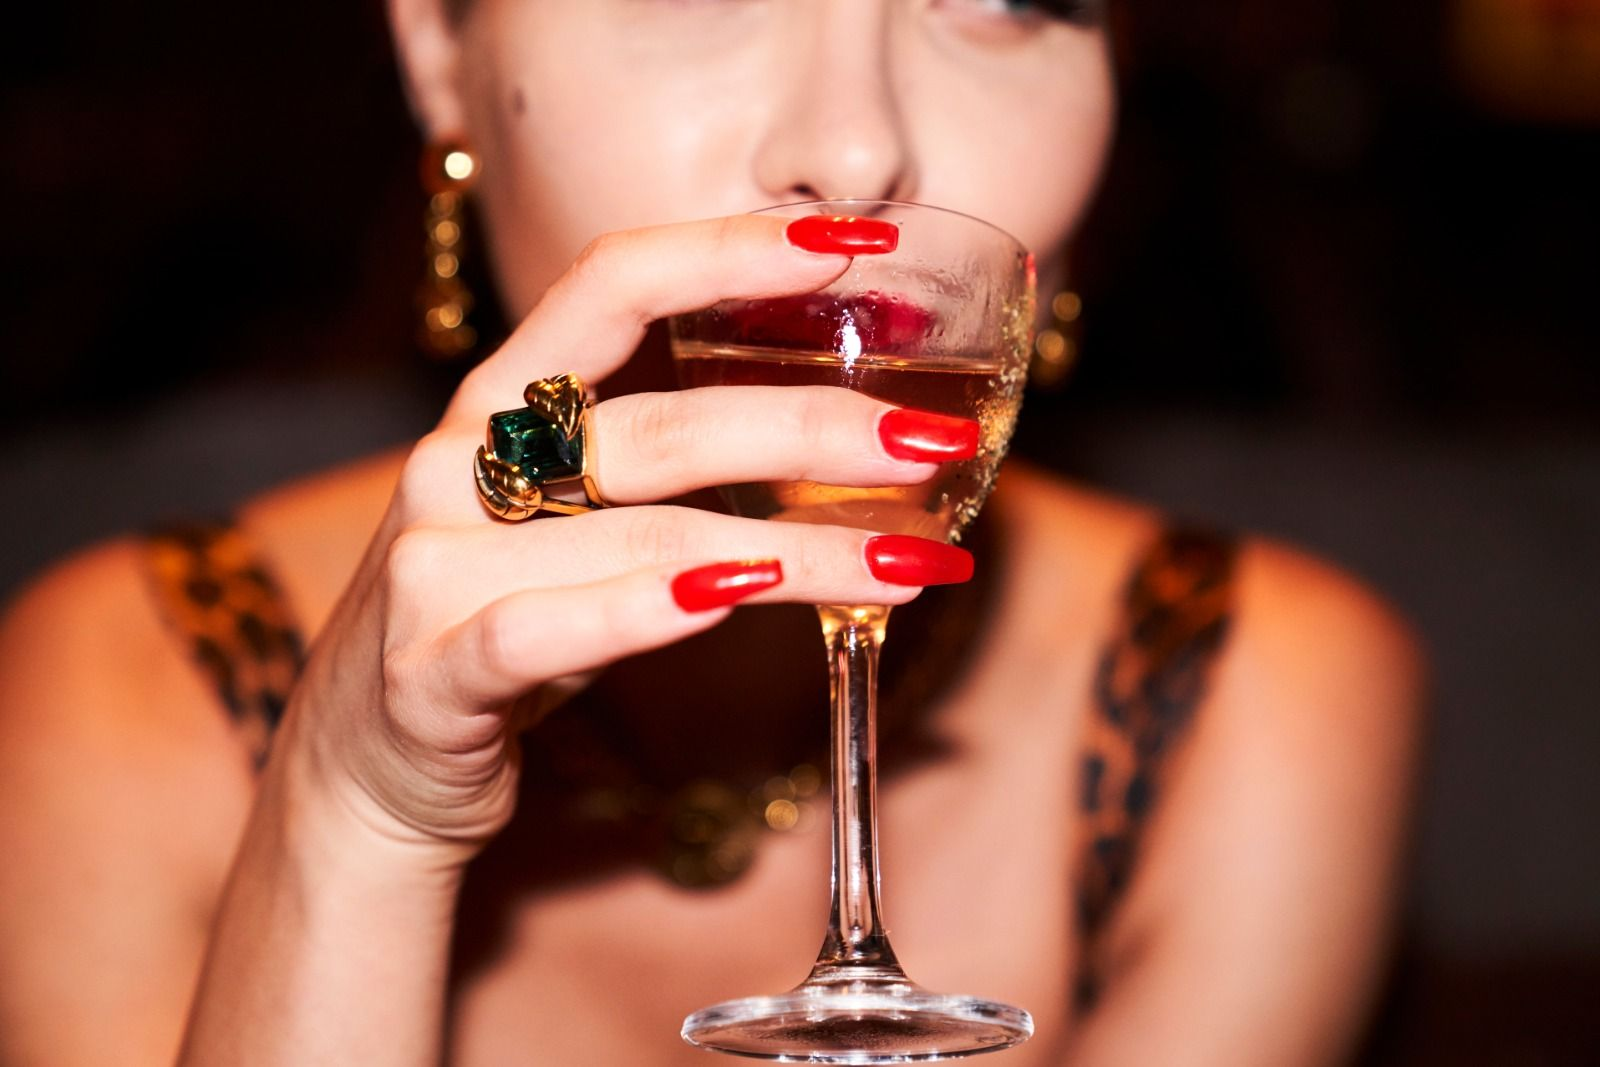 Girl with red nails drinking a cocktail